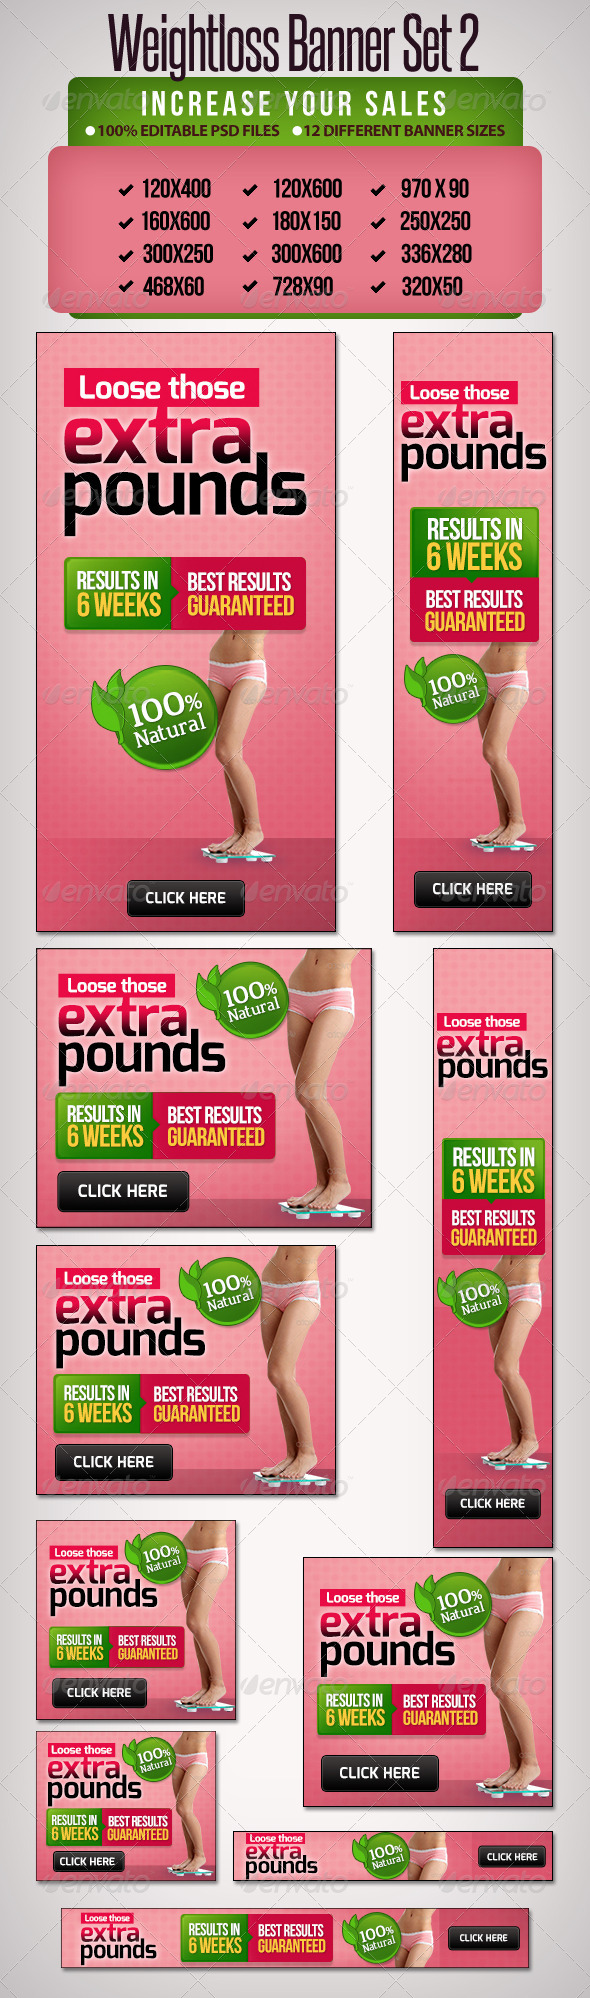 GraphicRiver Weightloss Banner Set 2 12 Google Standard Sizes 5230772